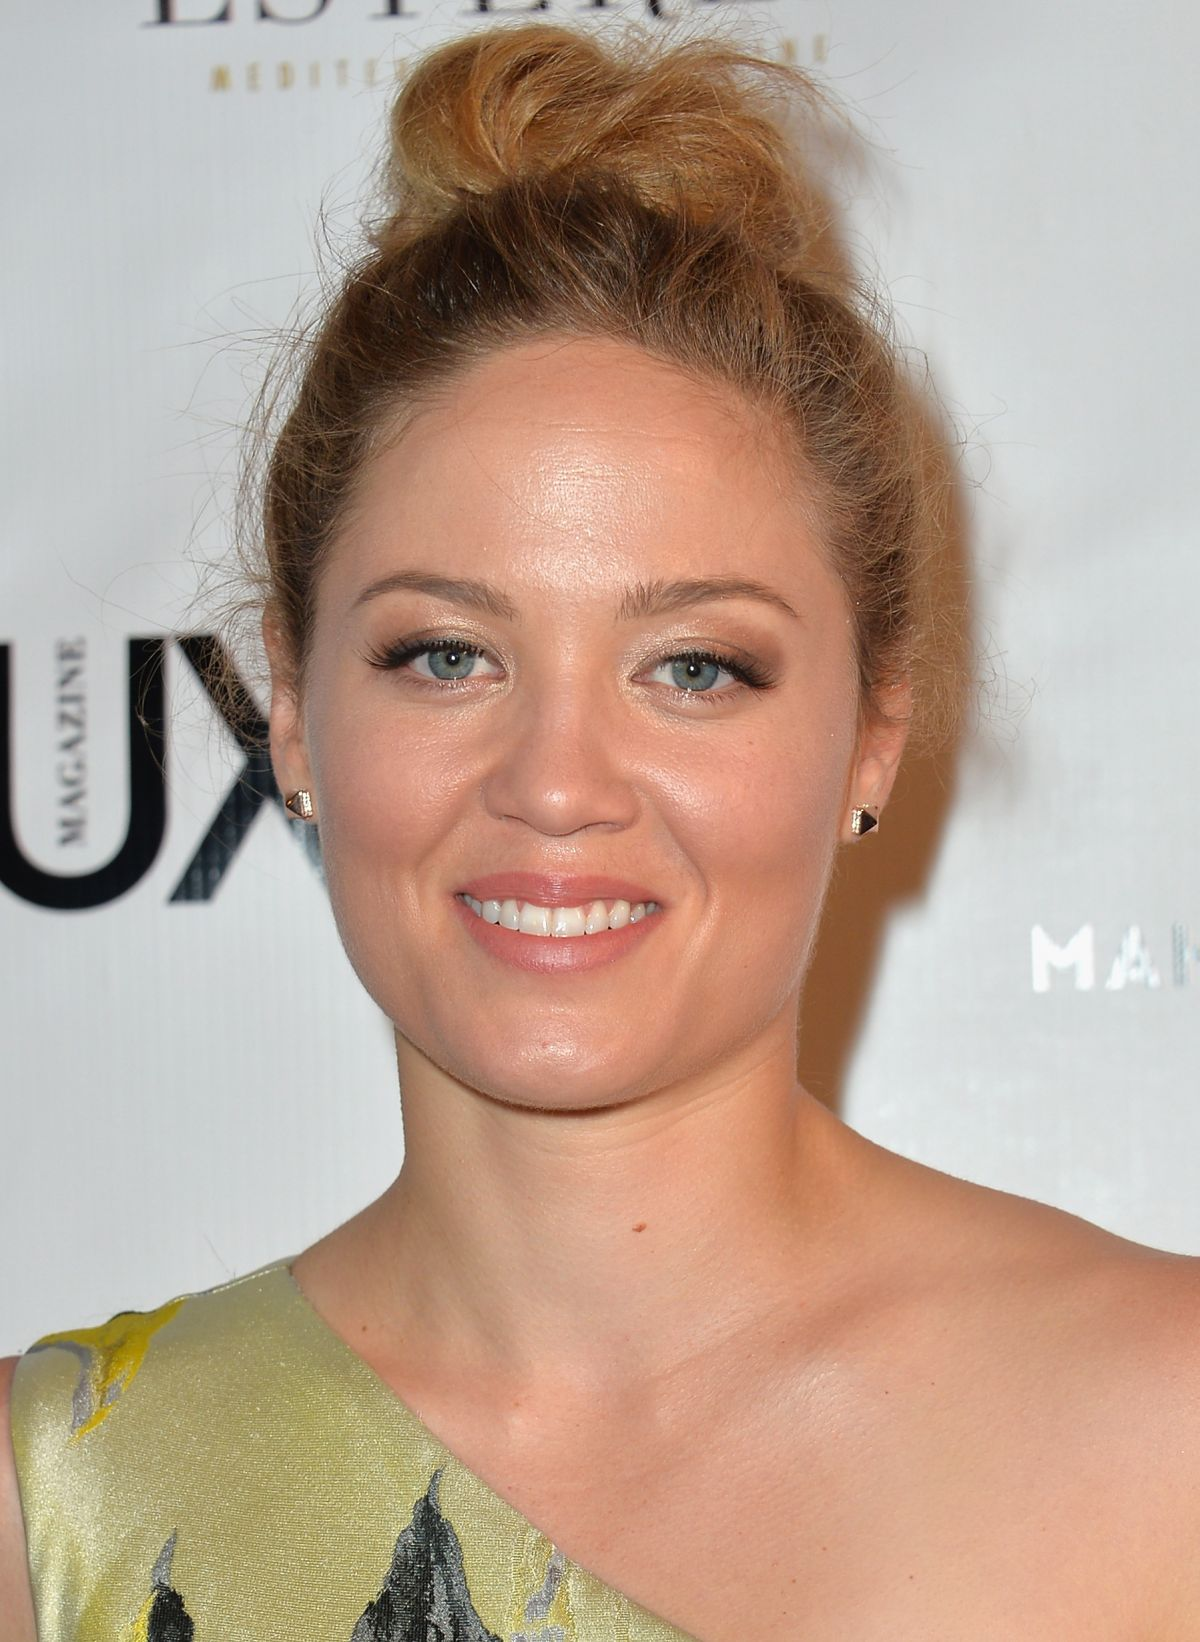 Erika Christensen At The Genlux Magazine Issue Release Party In LA